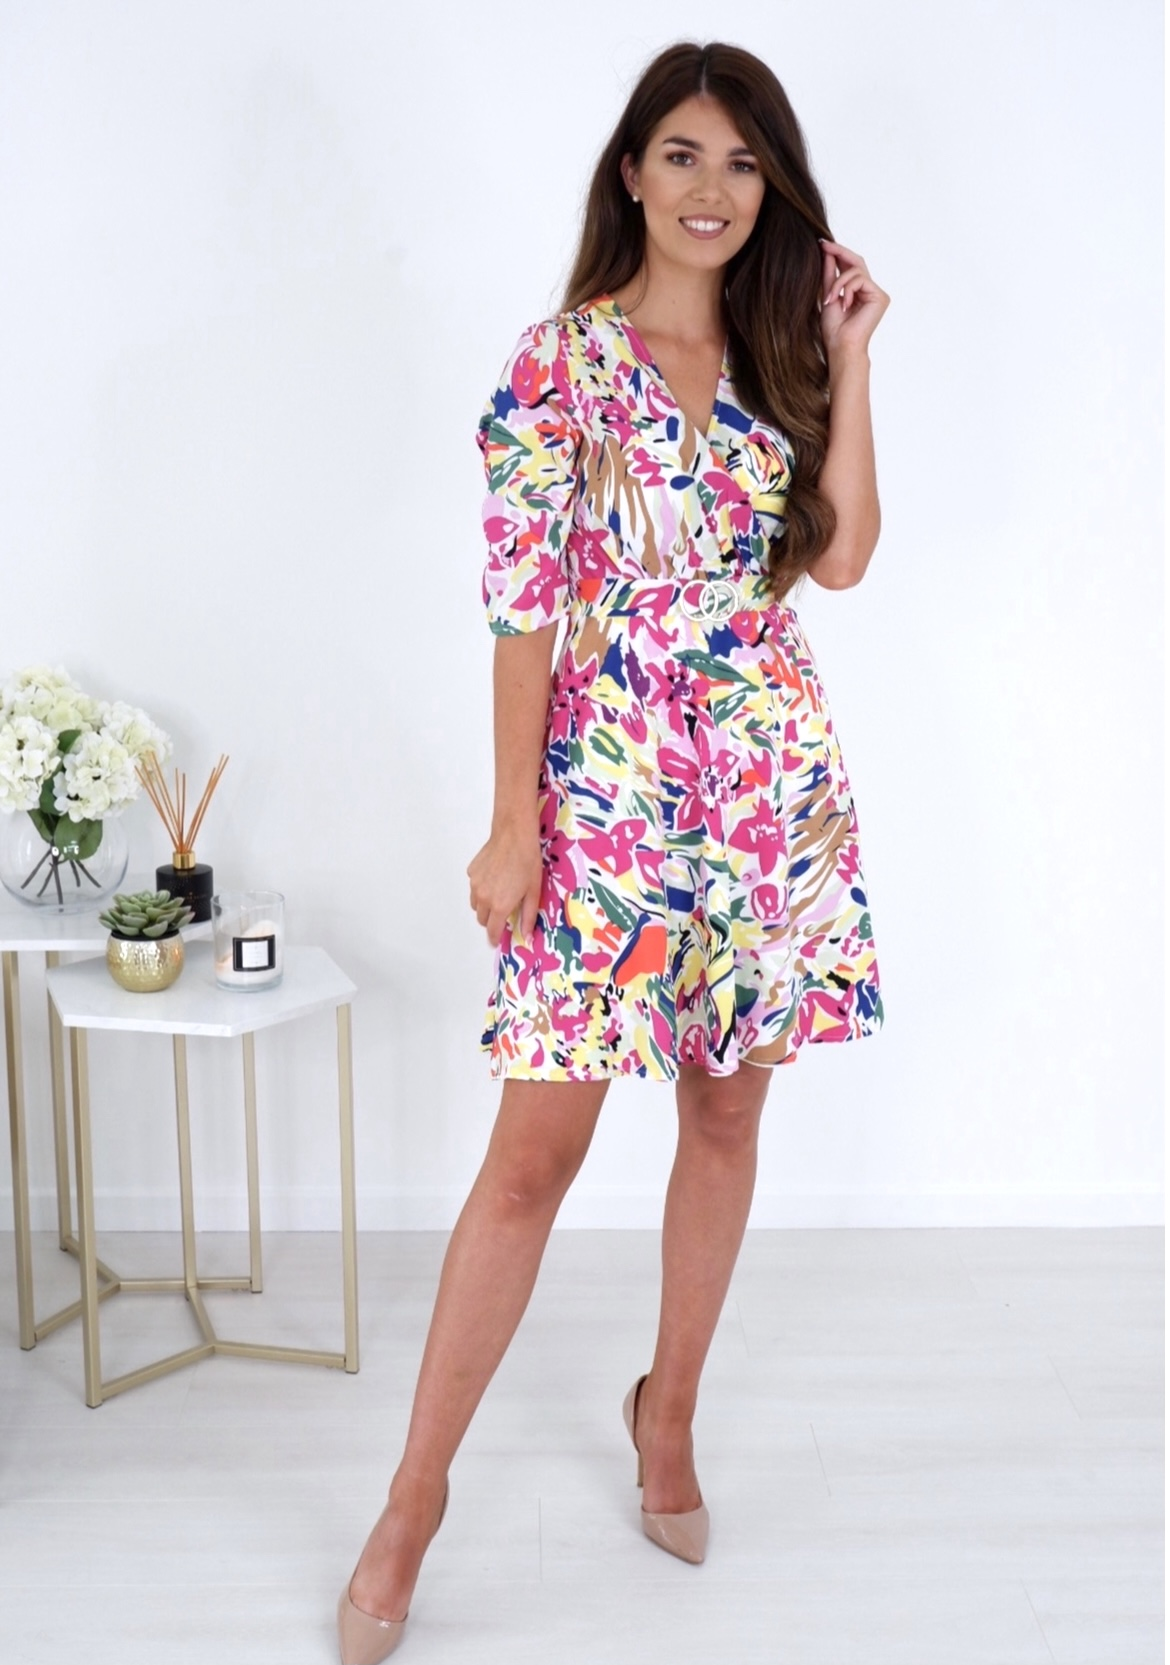 Lucy – Buckle Detail 3/4 Sleeve Dress Bright Yellow/Pink Floral produ